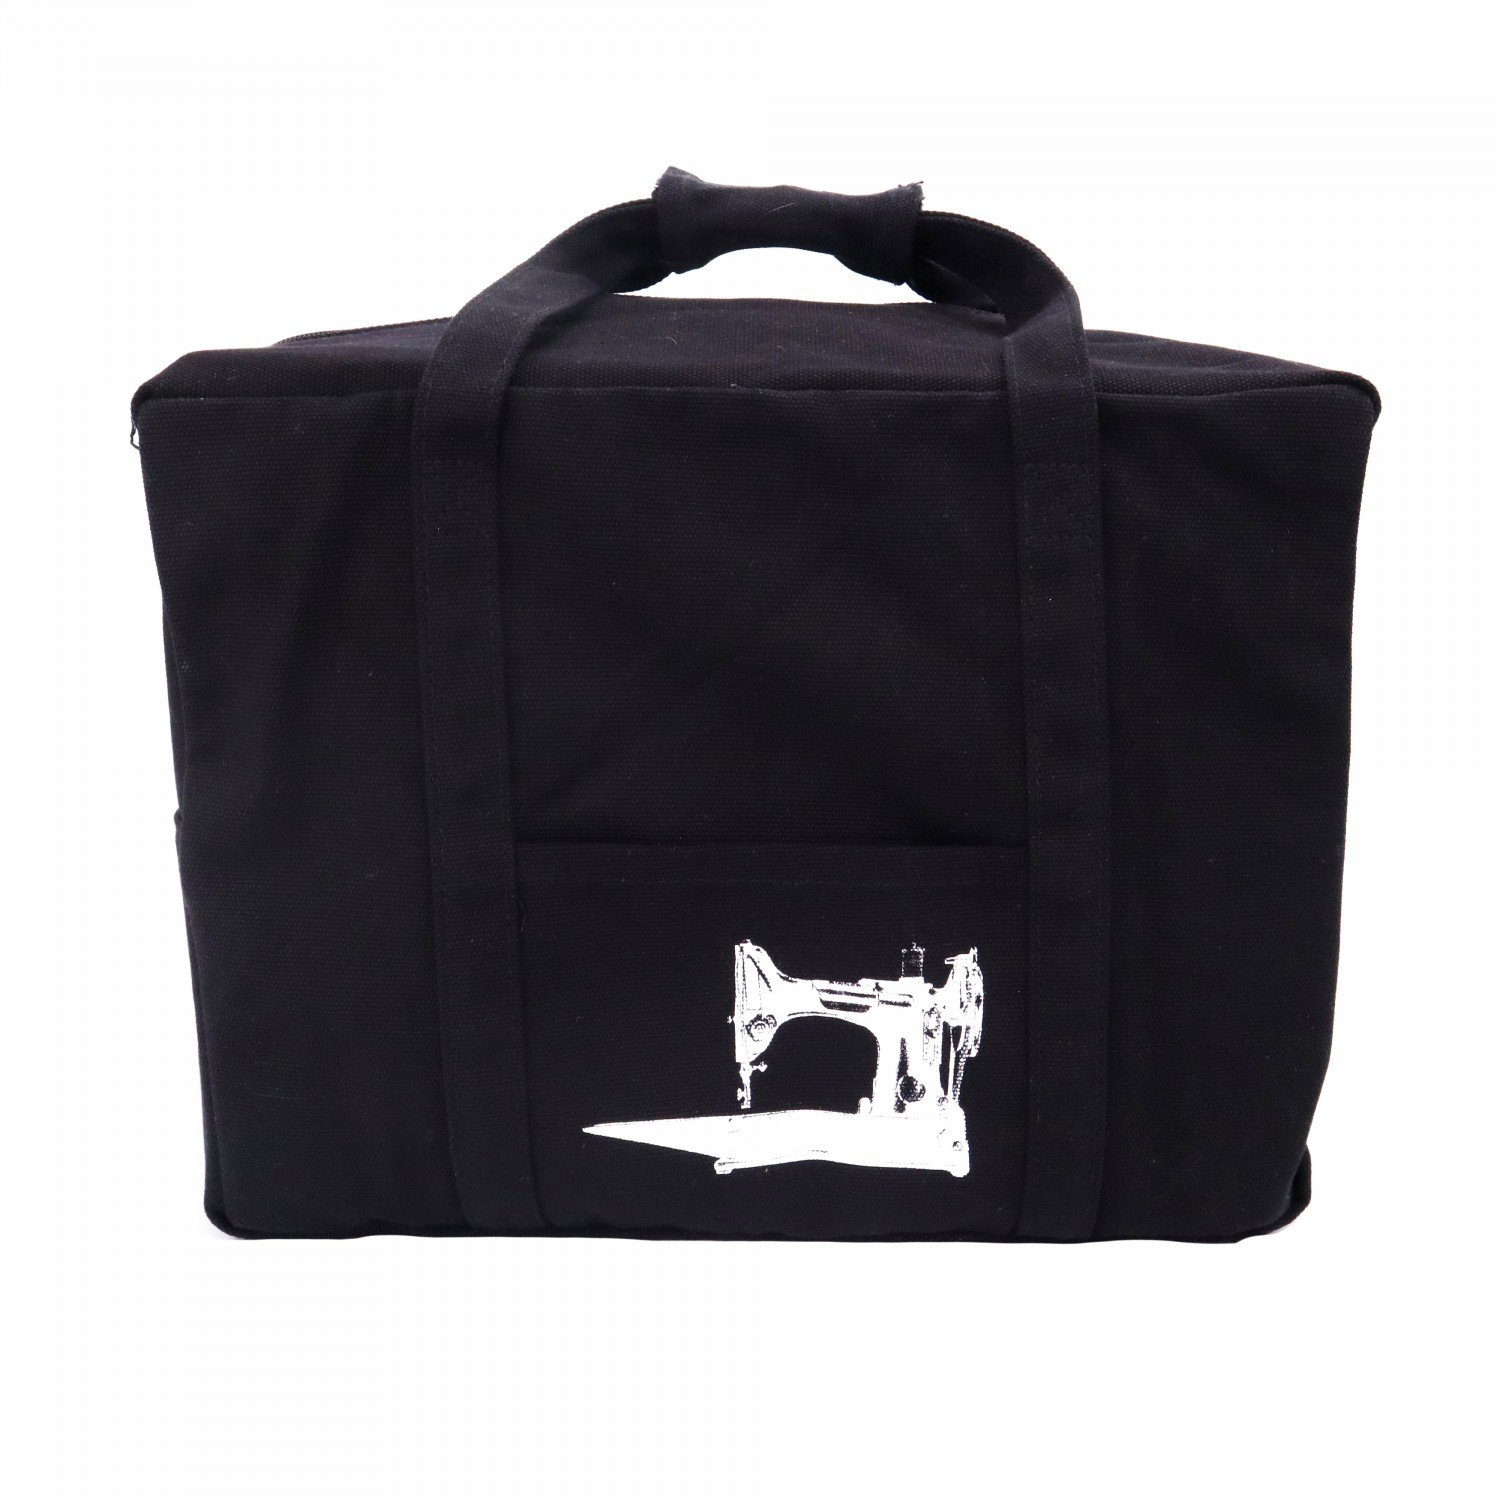 Tote Bag For Featherweight Case - Assorted Colors